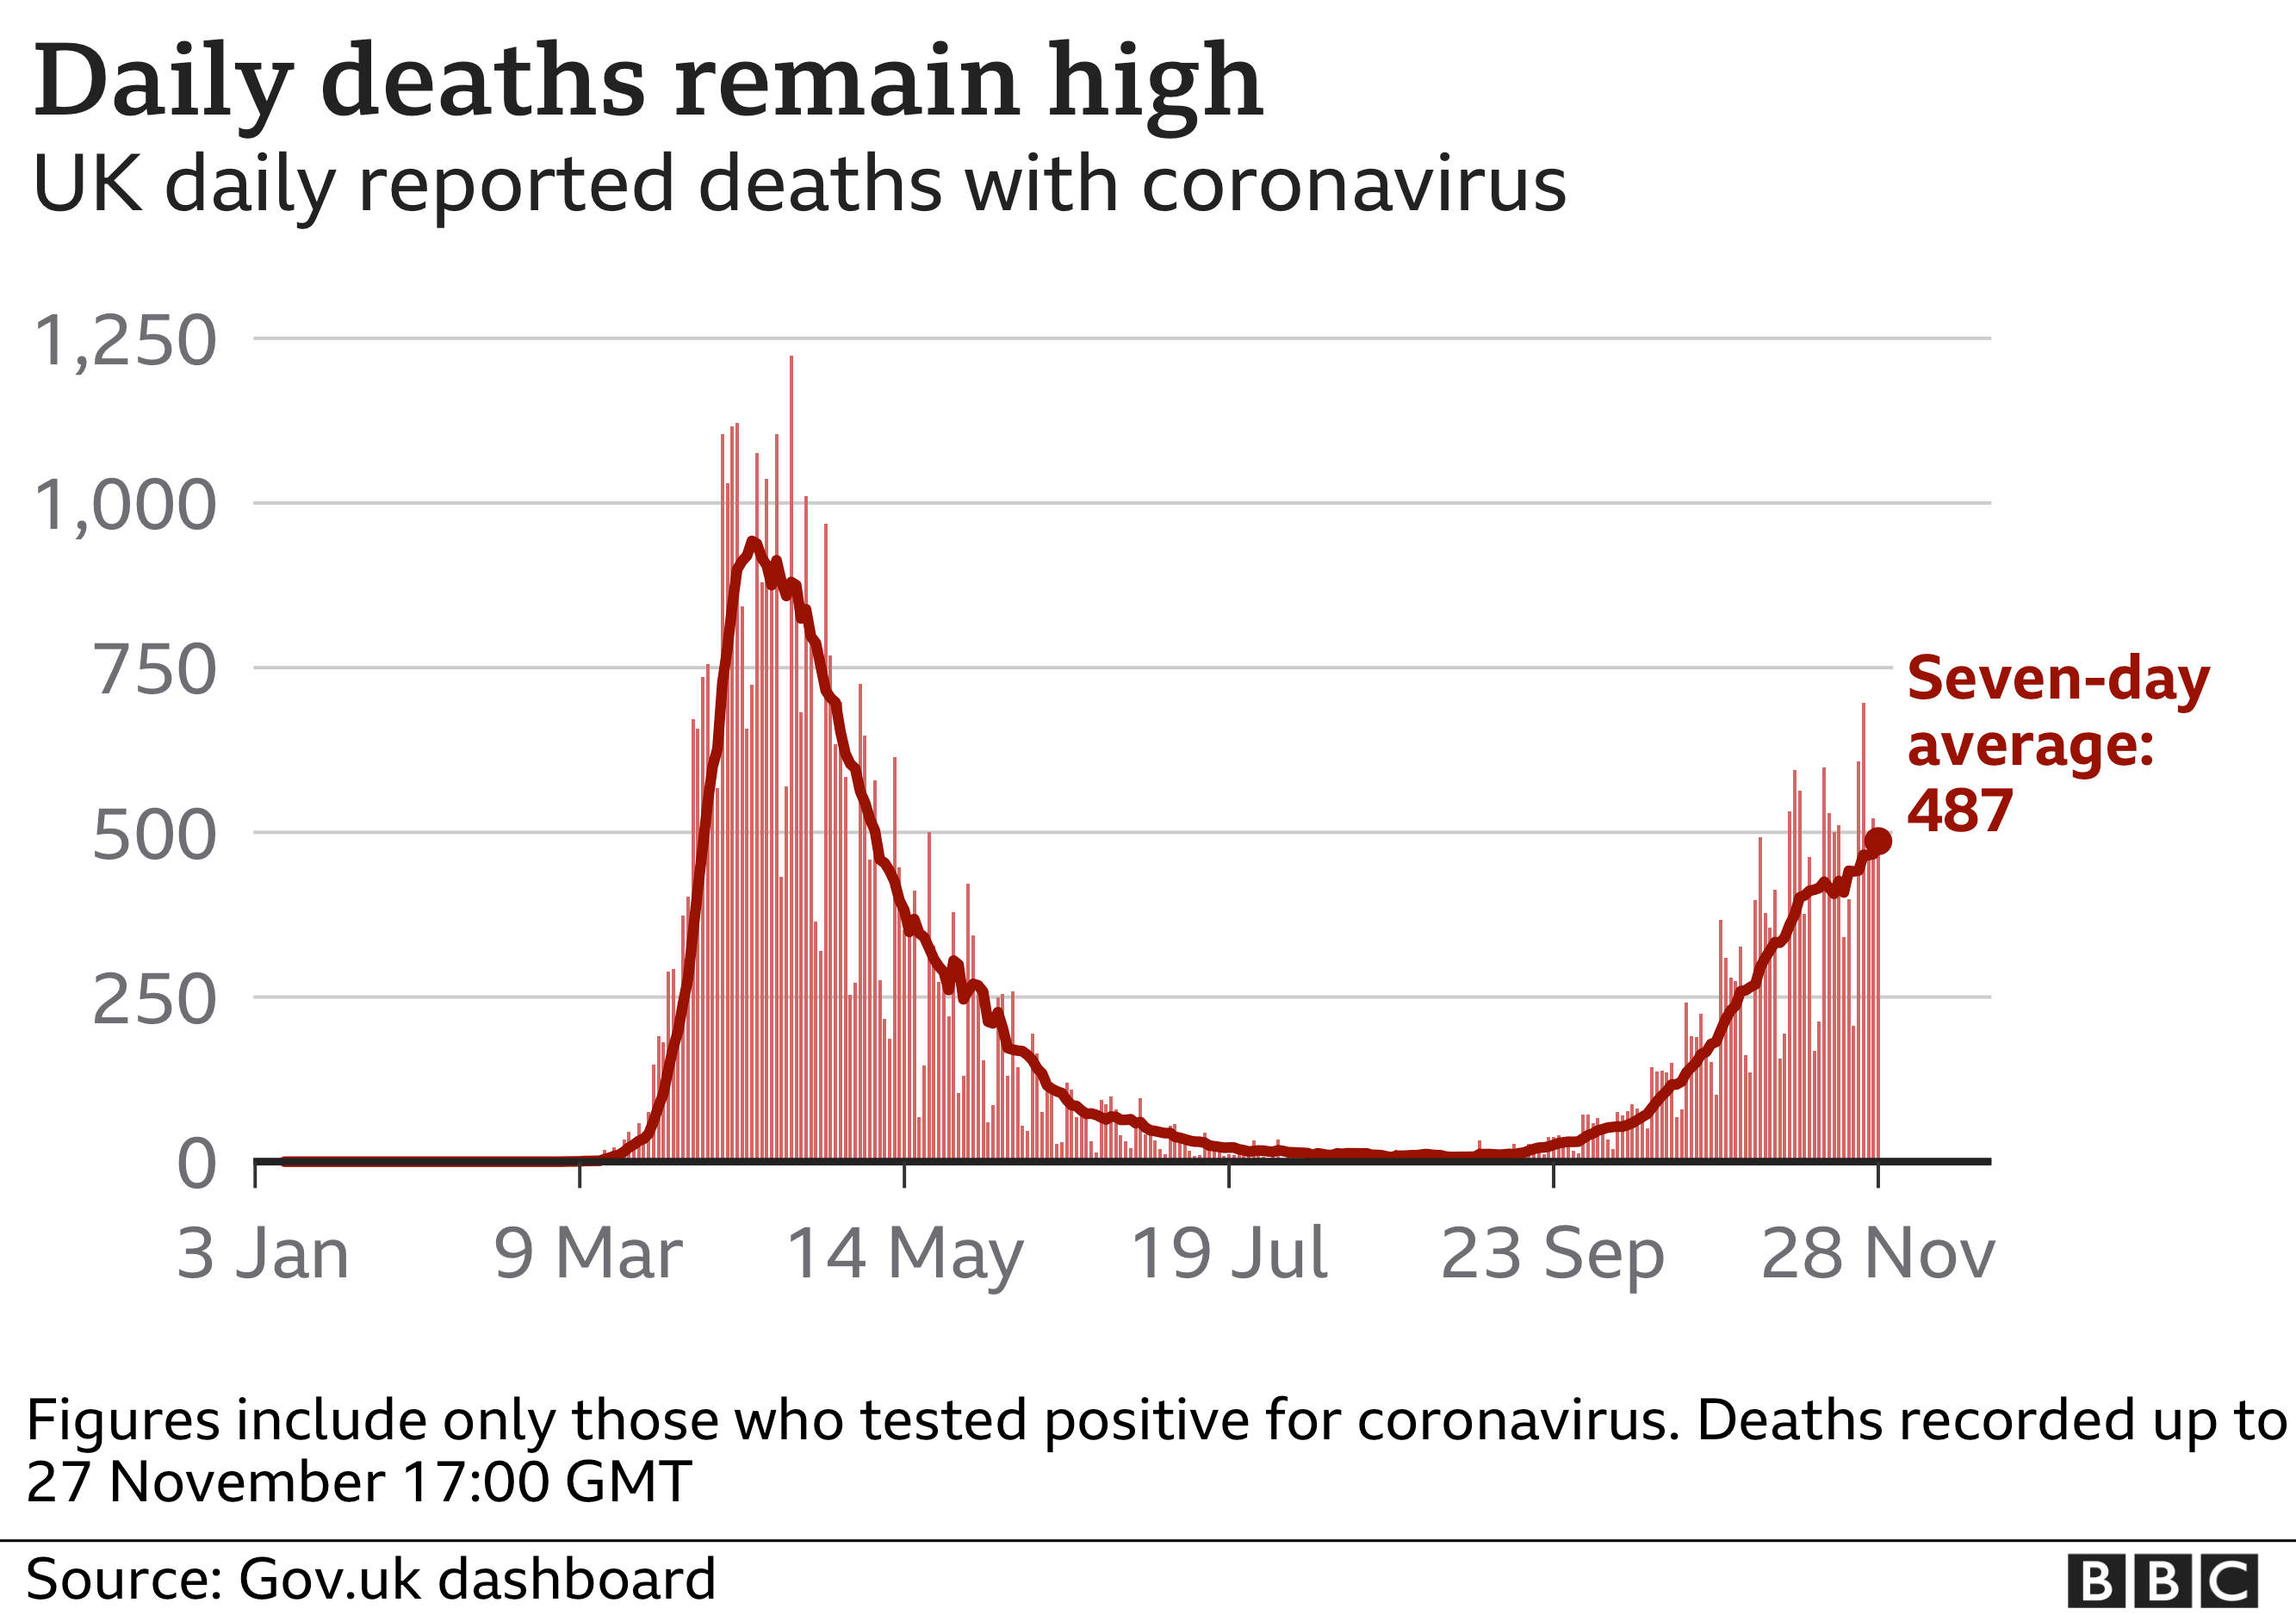 Chart shows daily deaths remain high